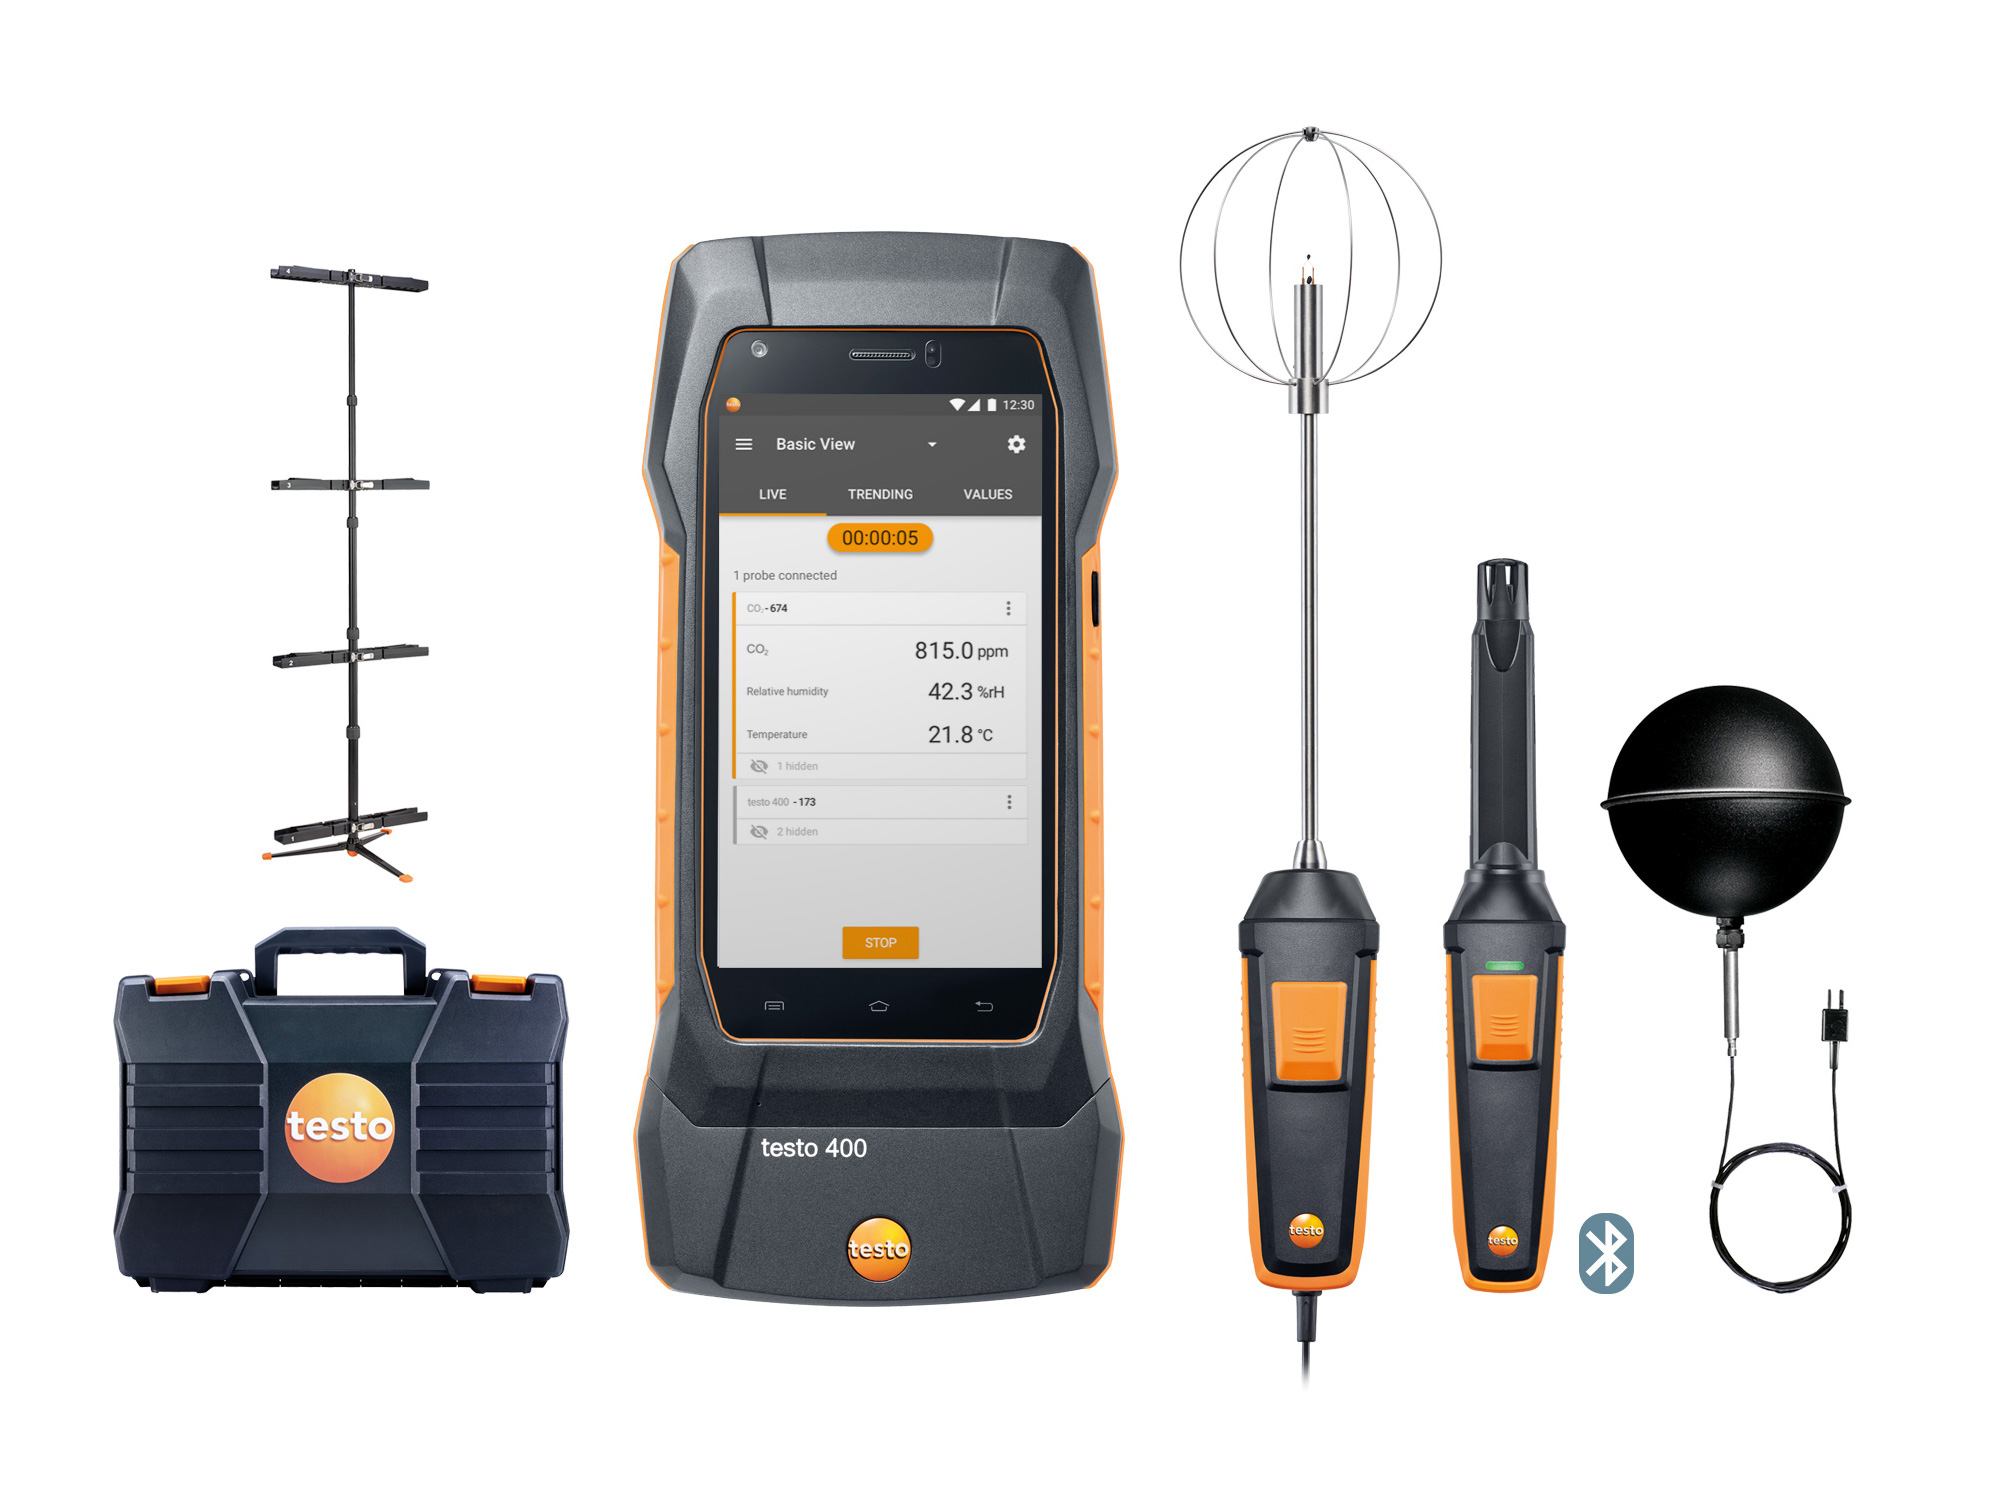 Testo 400 - the new universal IAQ instrument